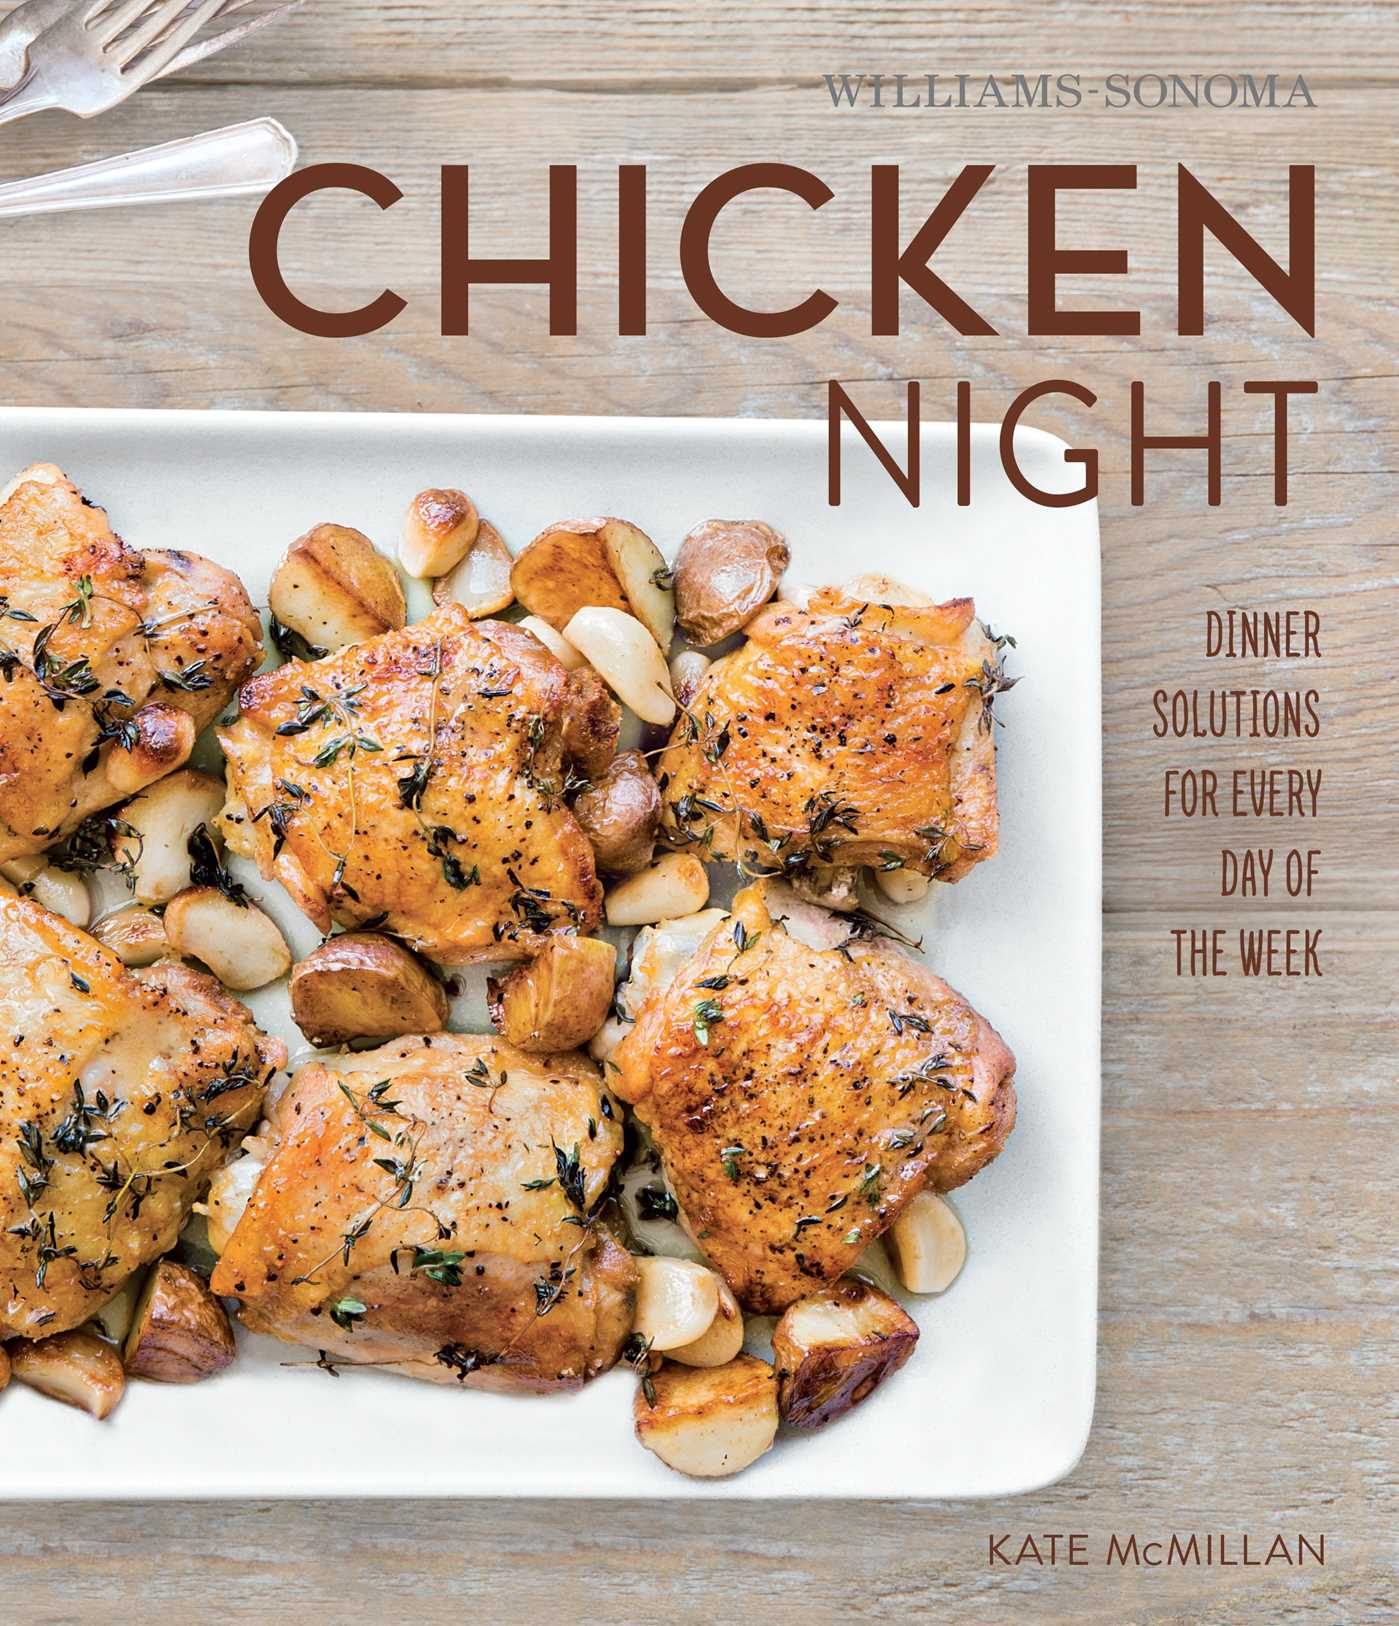 Chicken-night-(williams-sonoma)-9781616287986_hr